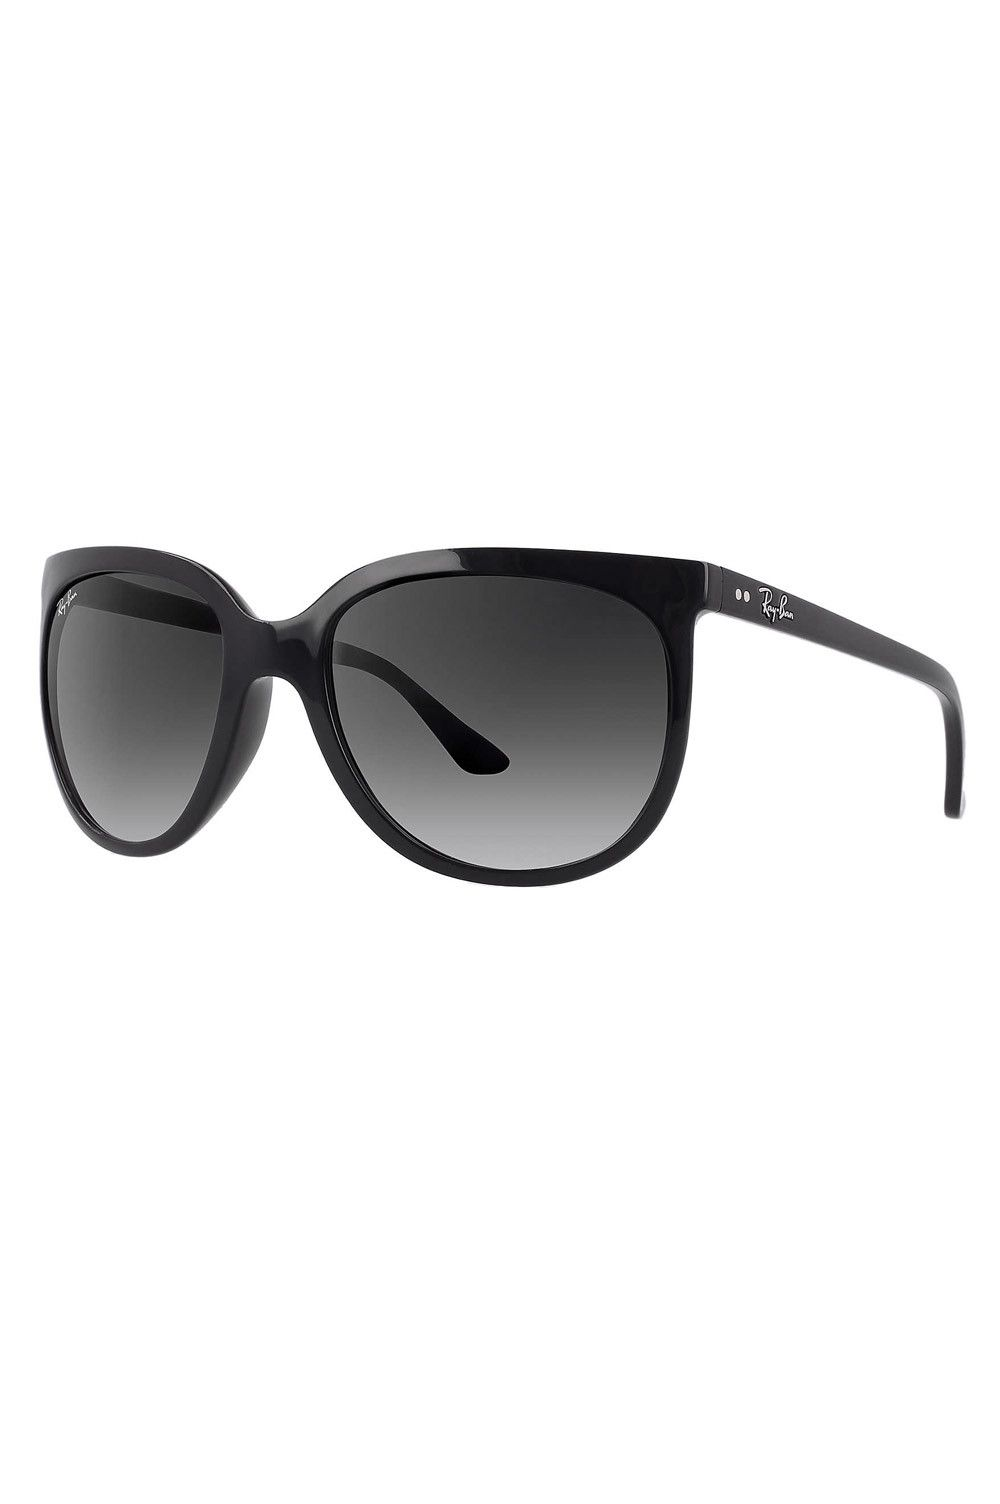 7dc9379b21 A founding member of the Ray-Ban family